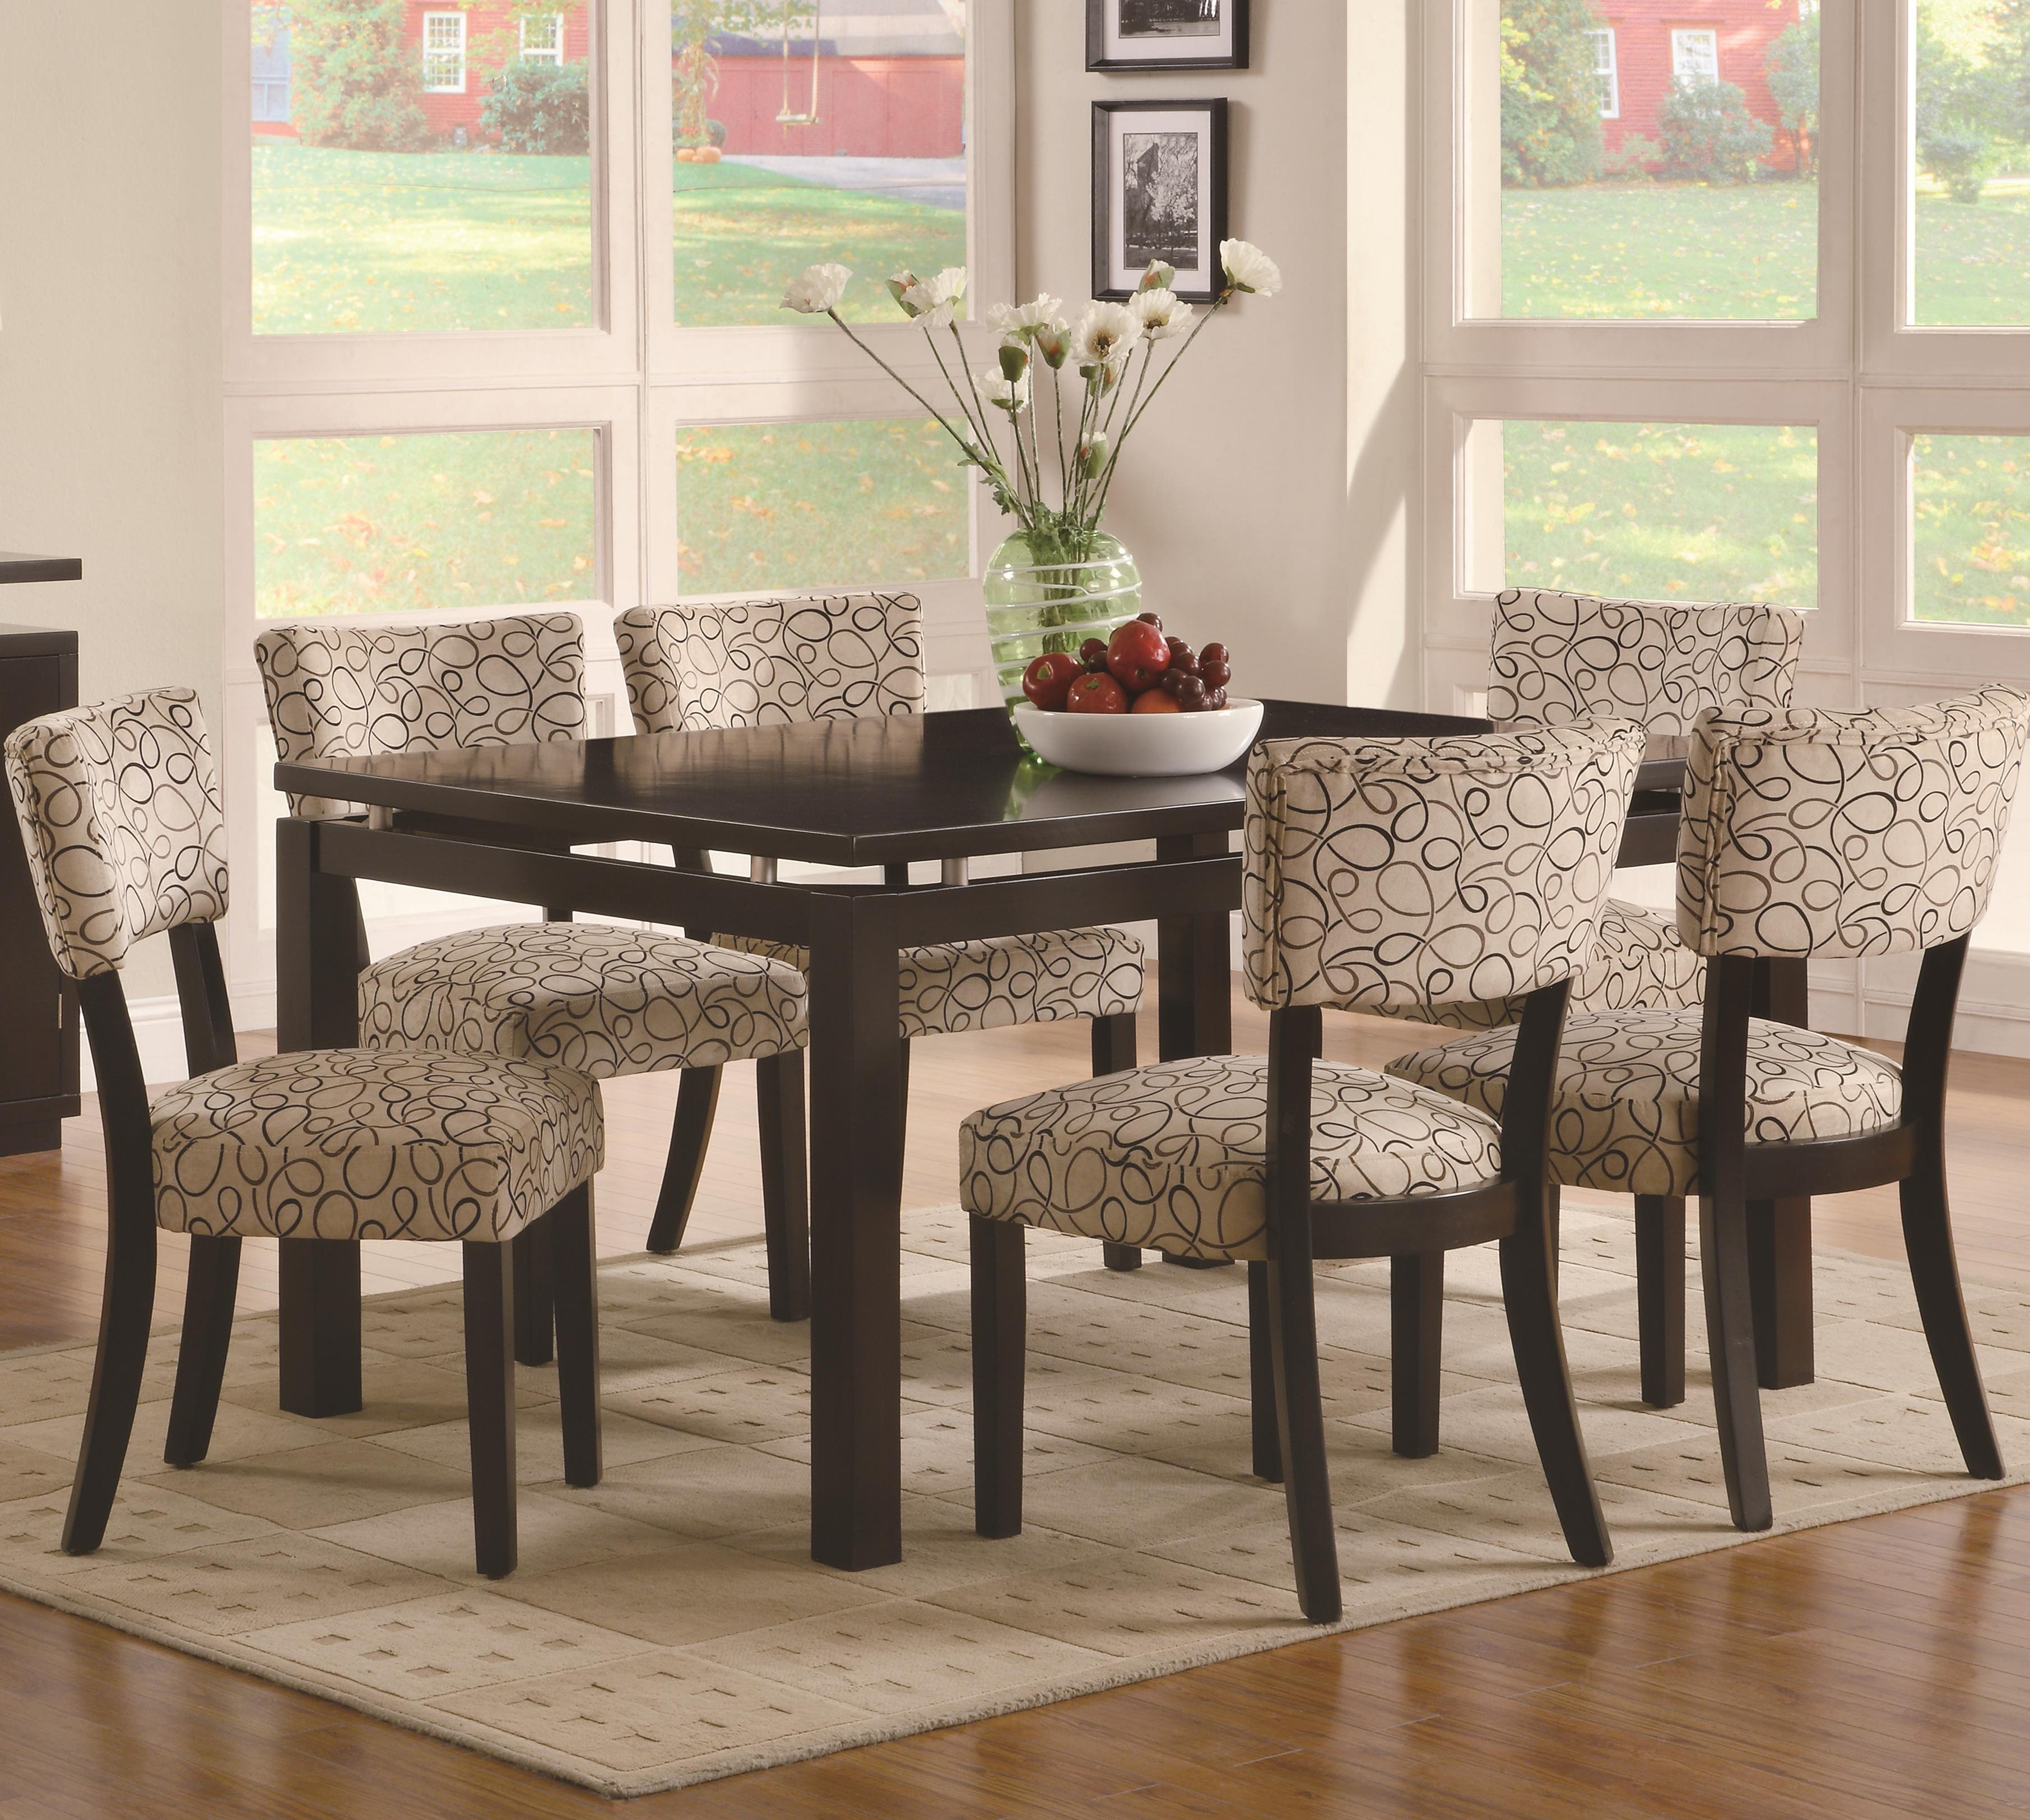 Libby 7 Piece Table & Chair Set by Coaster at Lapeer Furniture & Mattress Center